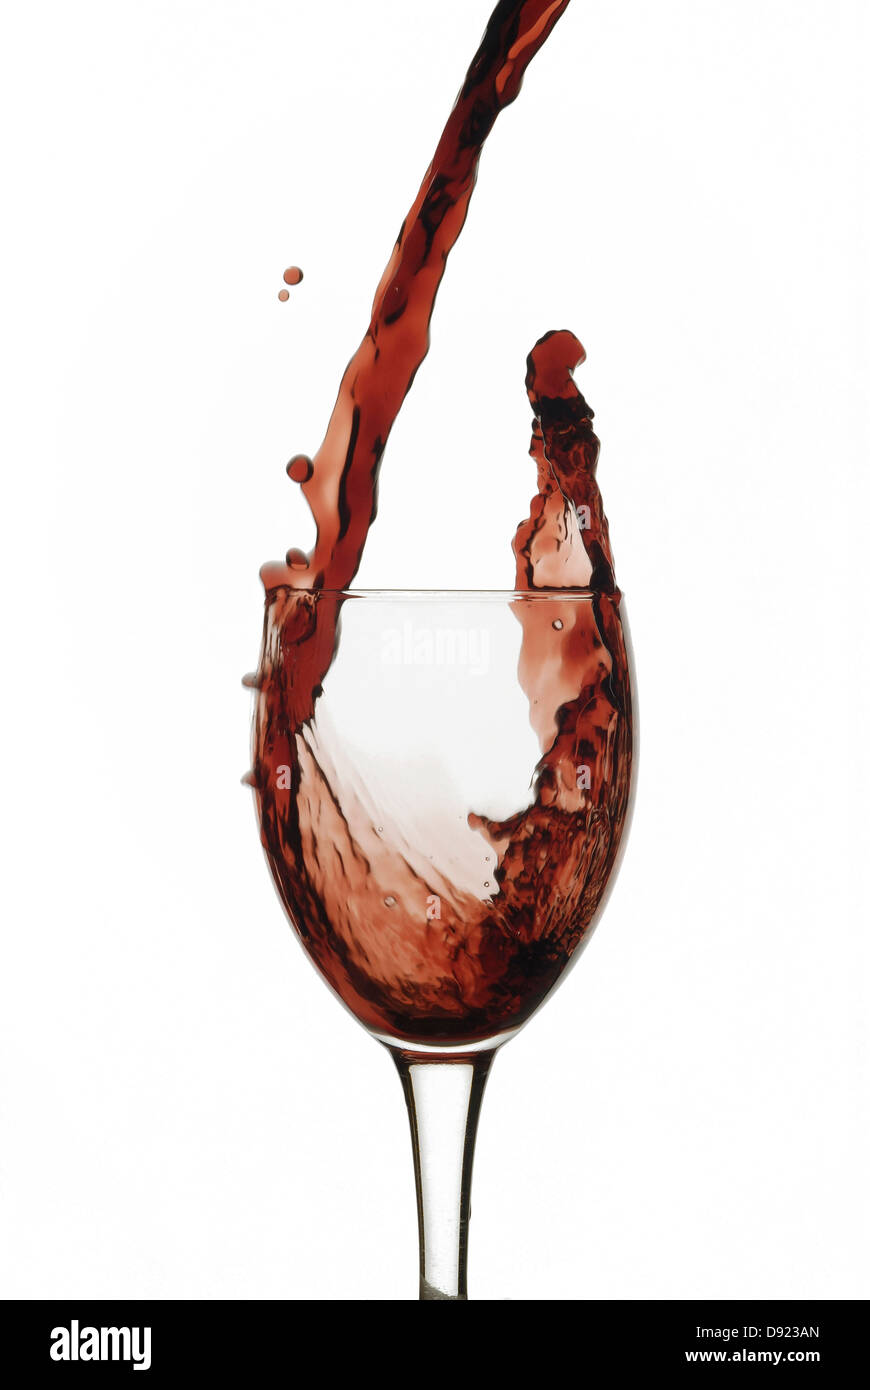 Pouring red wine on a cup - Stock Image